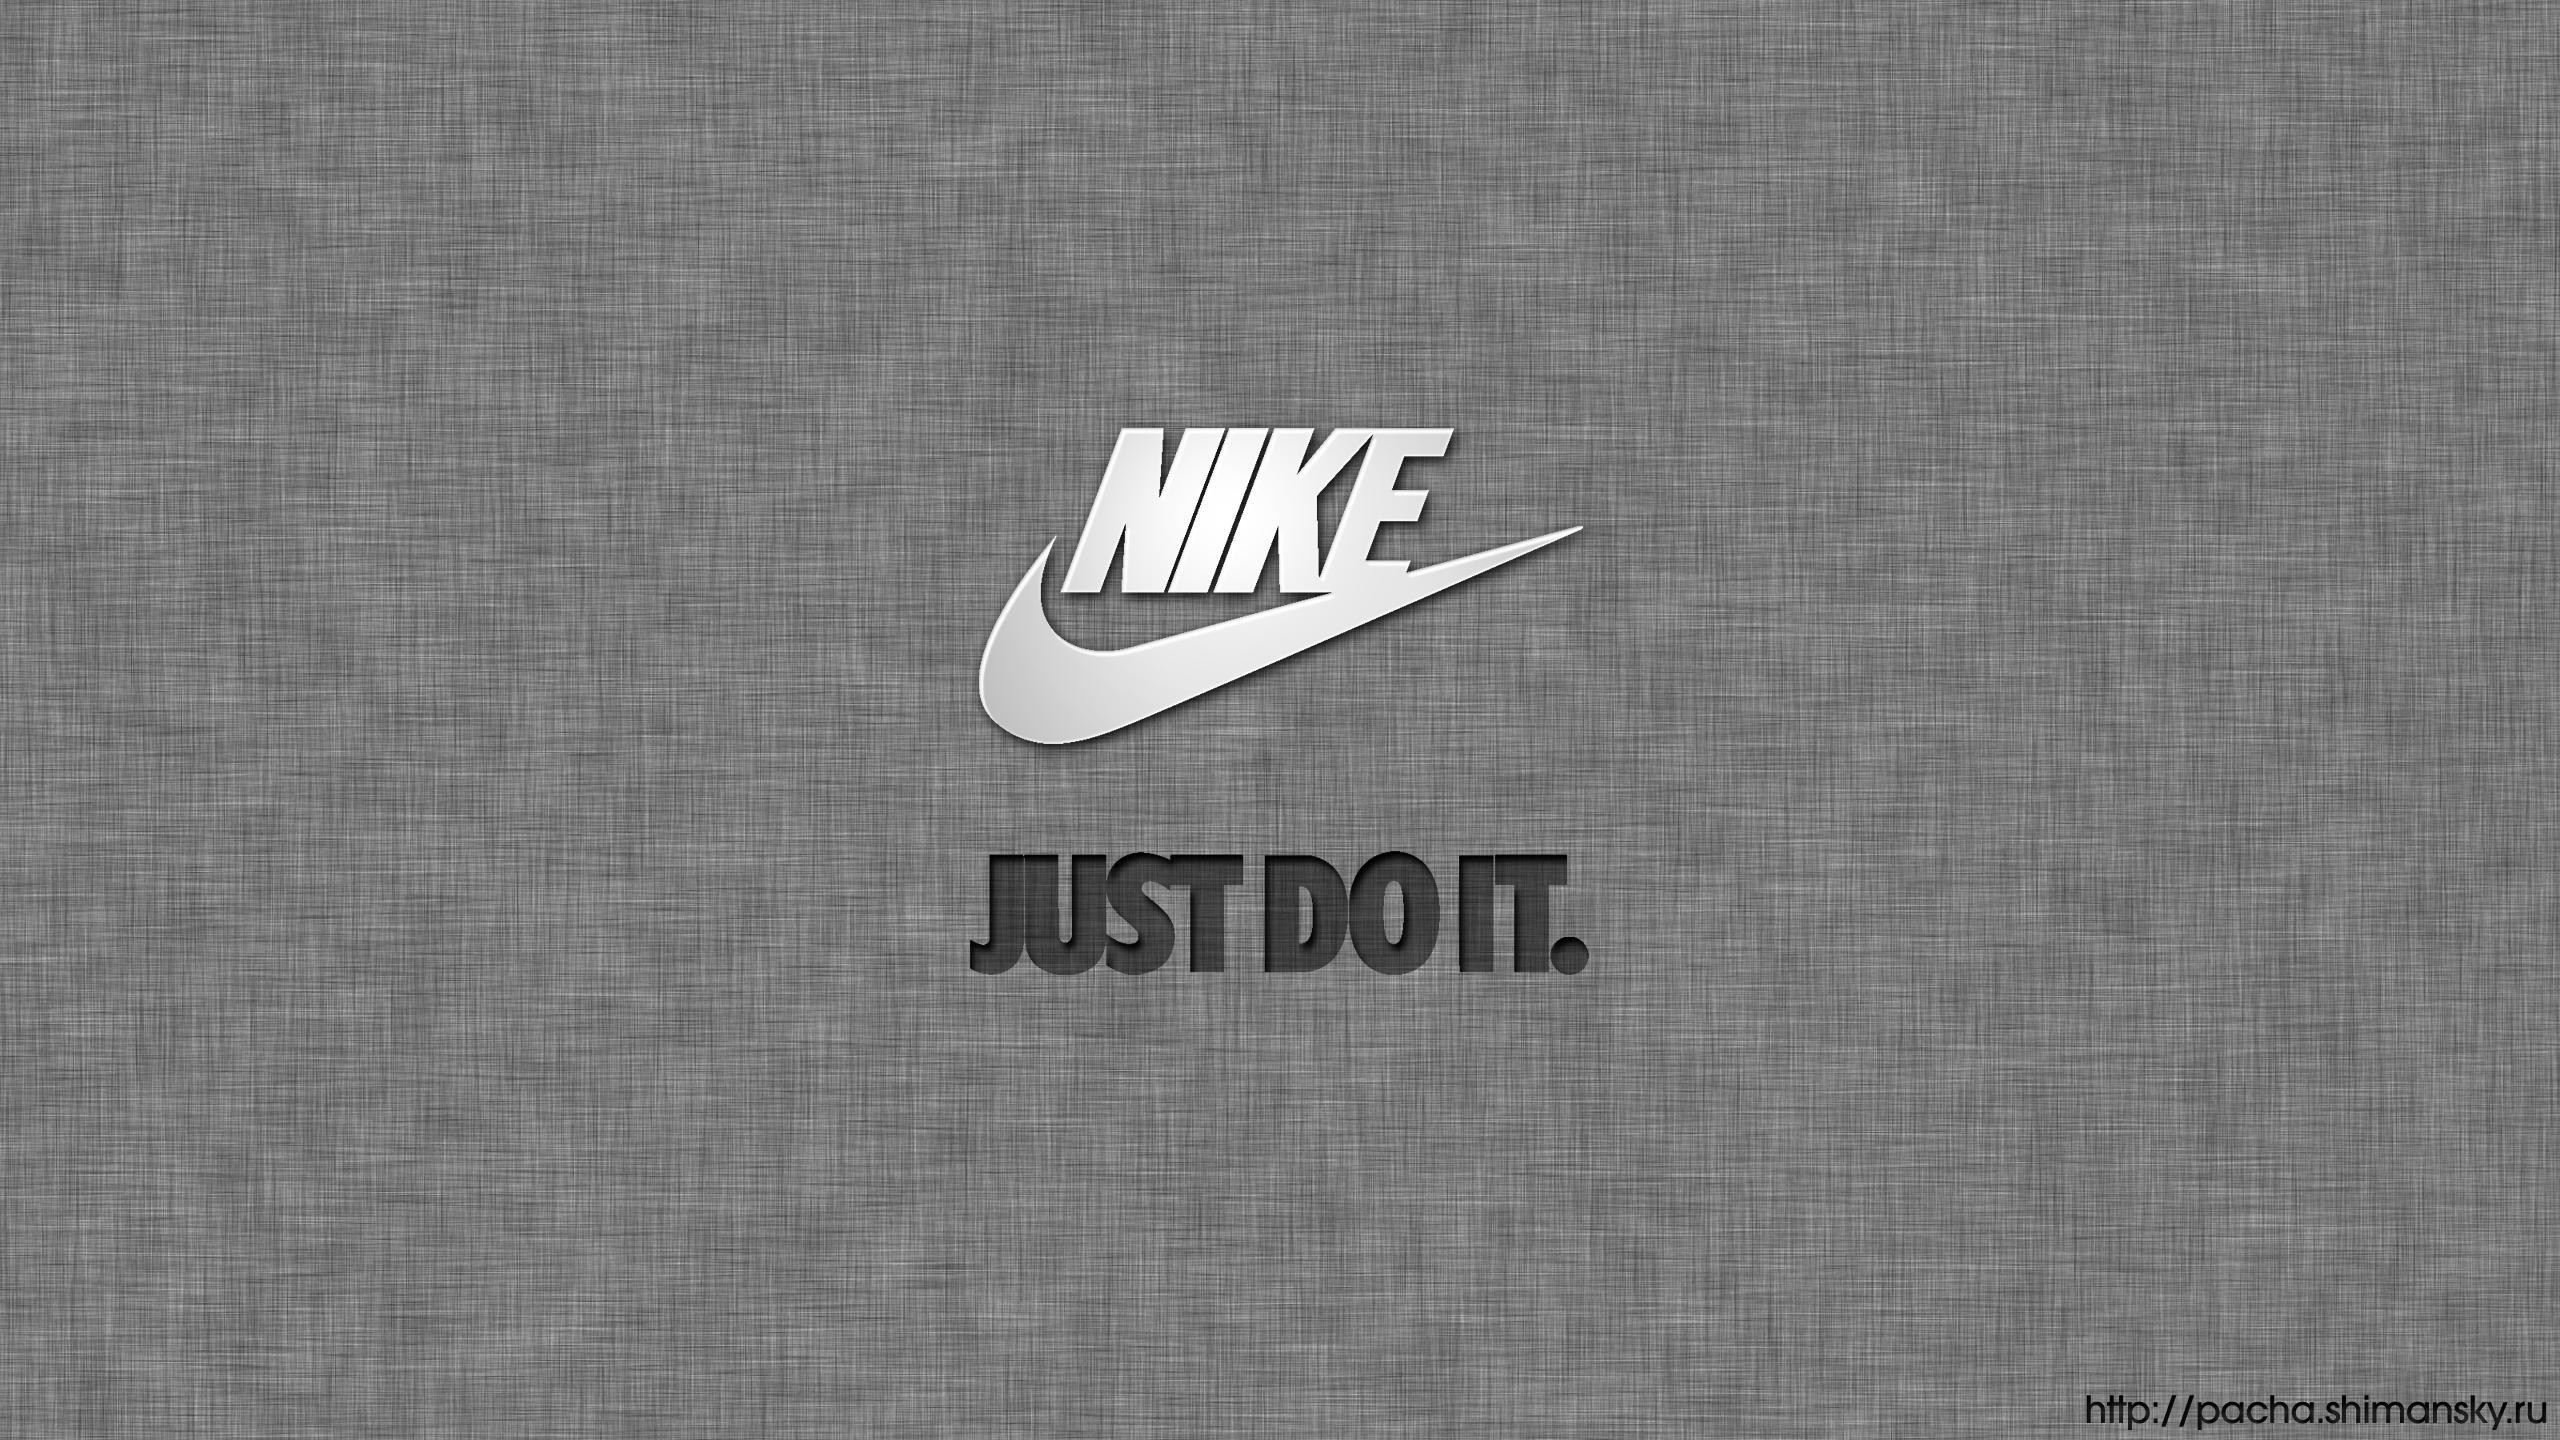 1920x1200 Image Detail For Free Wallpapers Nike Just Do It Girl Wallpaper Forlat Dyndns Org